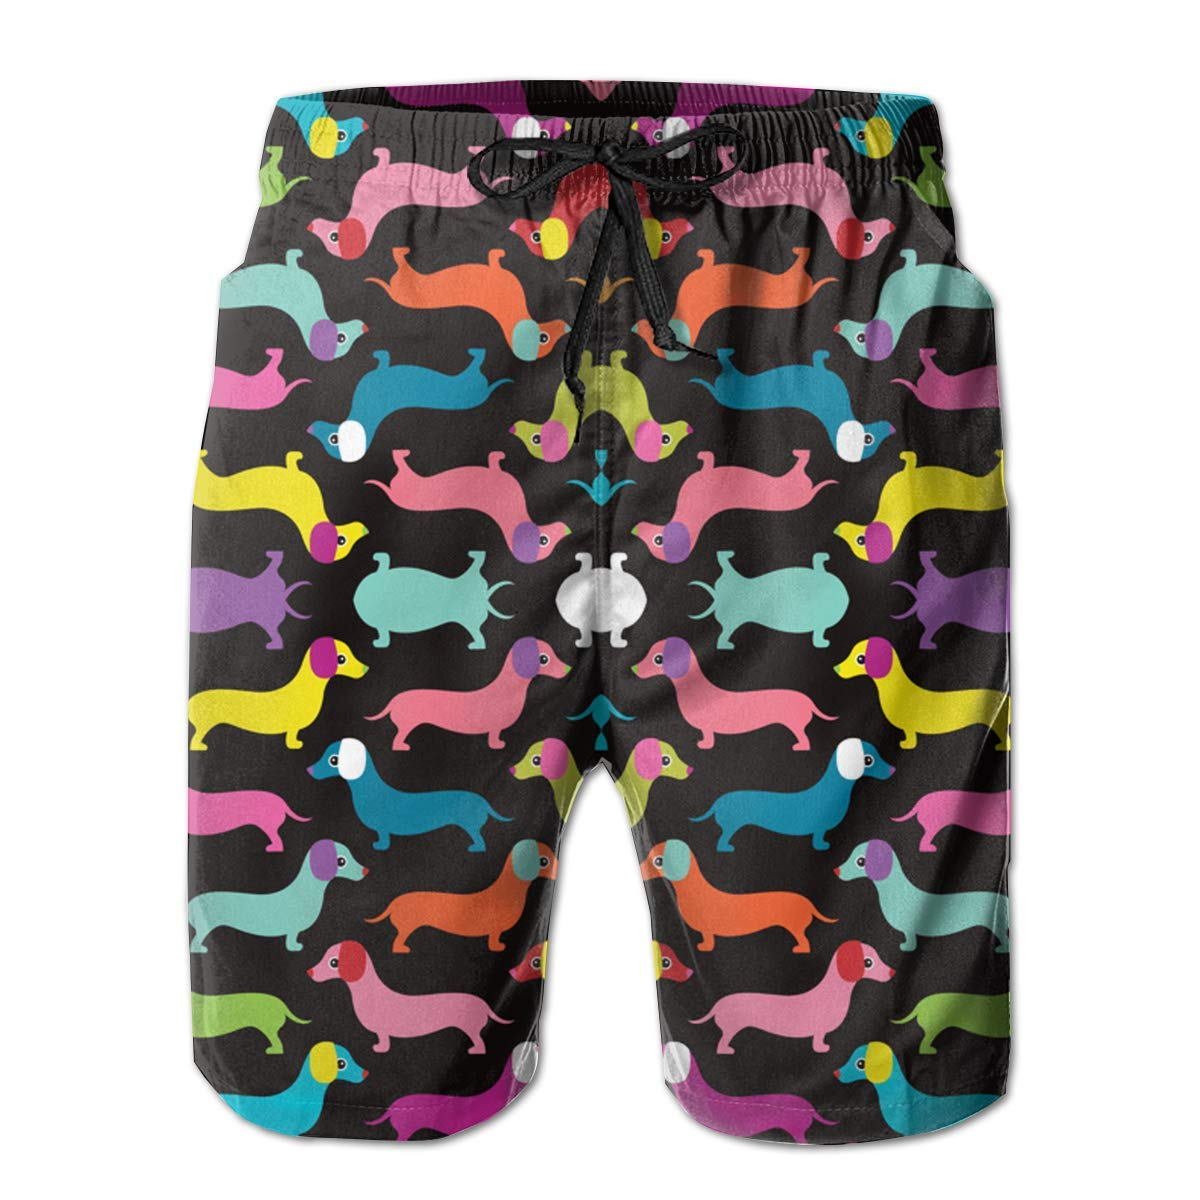 Pink Dogs On The Blue Cartoon with Dachshunds Print Swim Trunks Summer Beach Shorts Pockets Boardshorts for Men